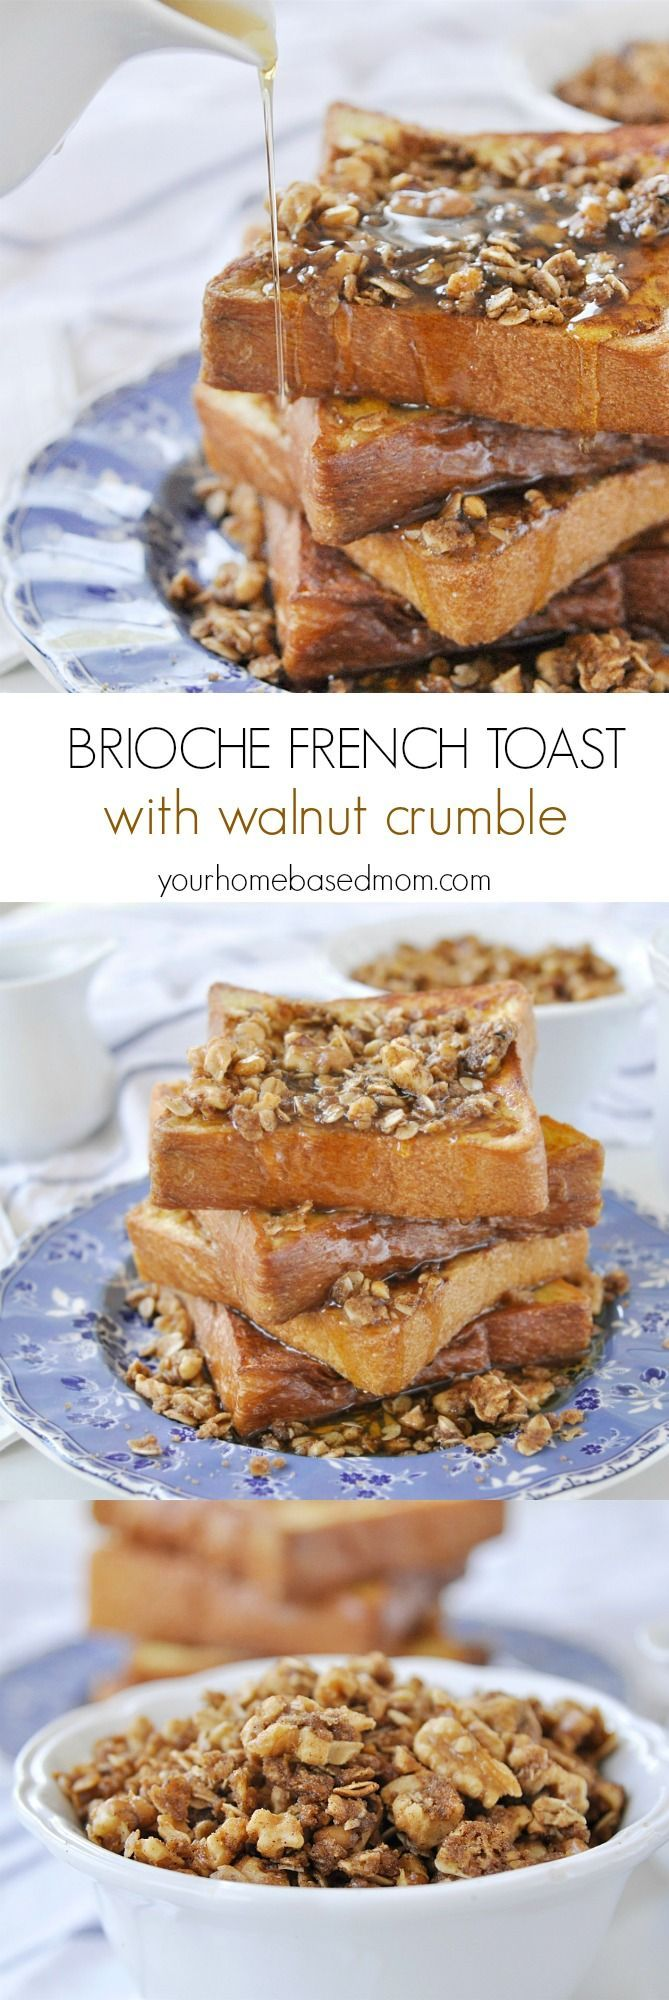 Brioche French Toast with walnut crumble with a drizzle of pure maple syrup is basically heaven on a plate!  The perfect recipe for breakfast or brunch.